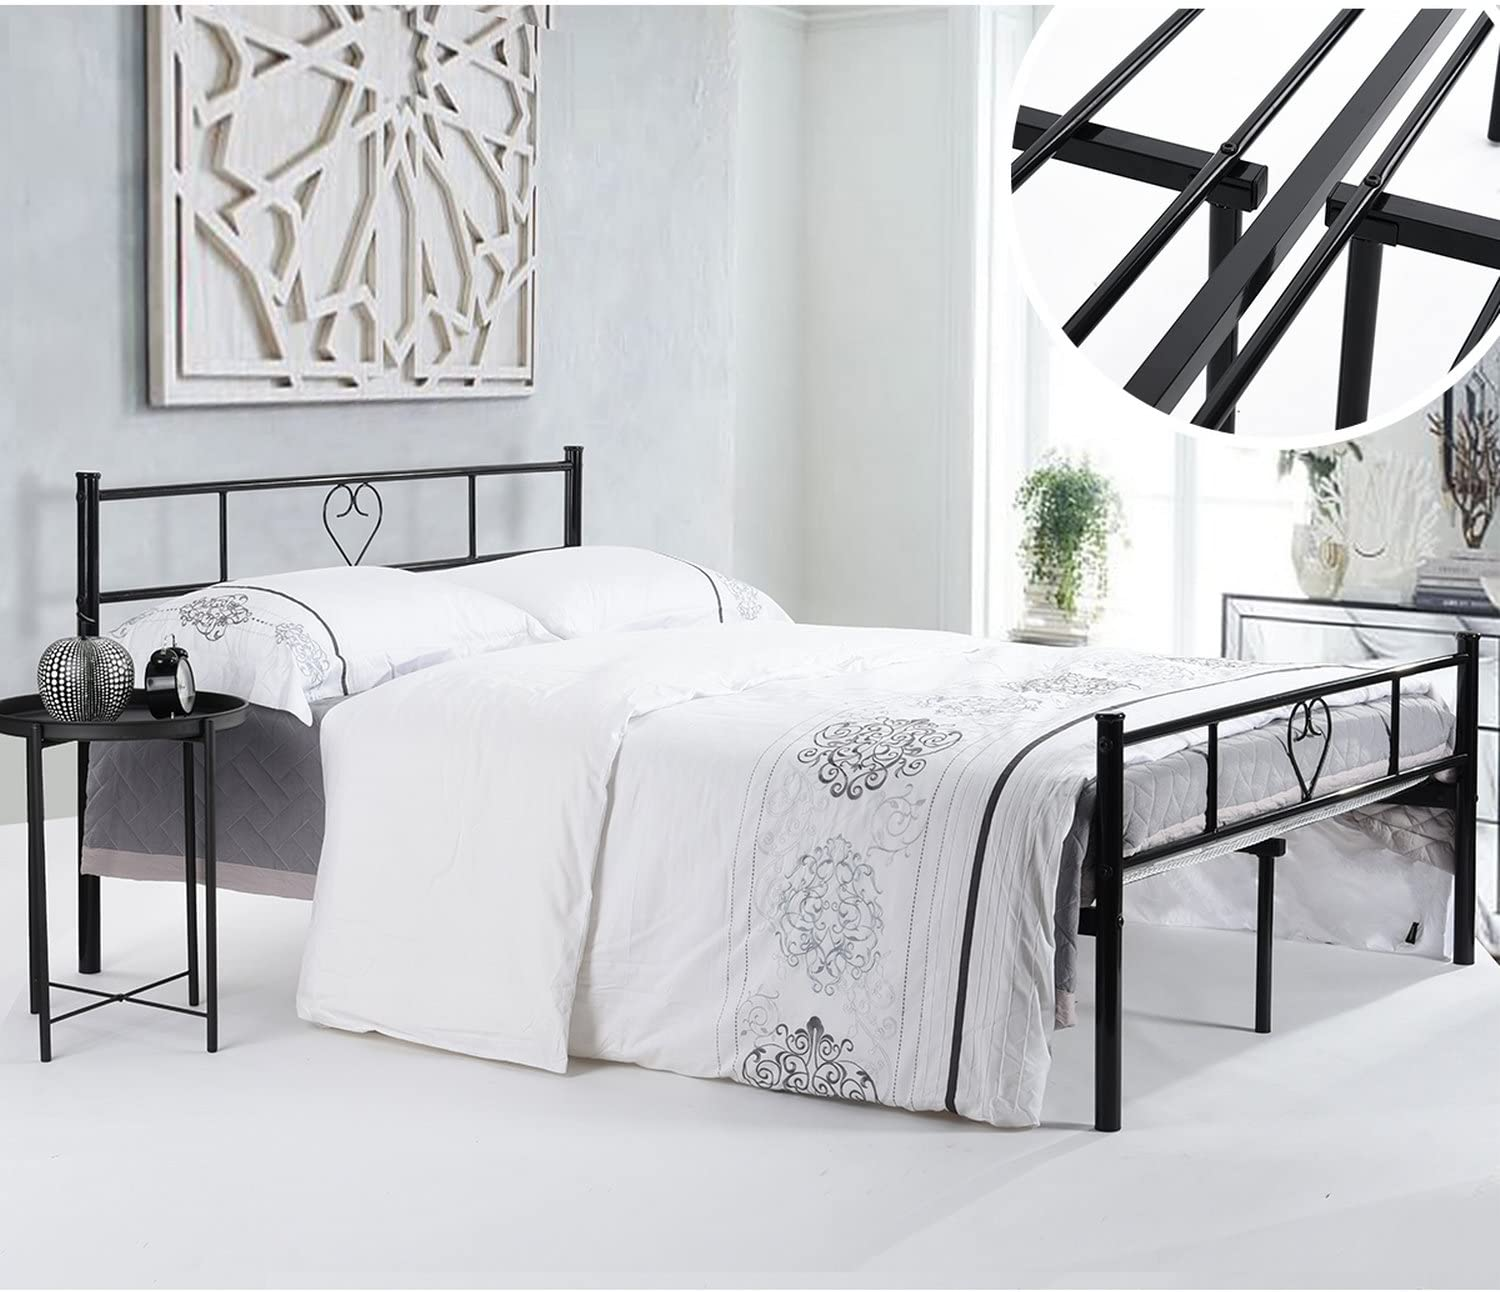 Homylin Metal Bed Frame Full Double Size With Heavy Metal Slats And Footboard Romantic Heart Design Style Black Amazon Ca Home Kitchen